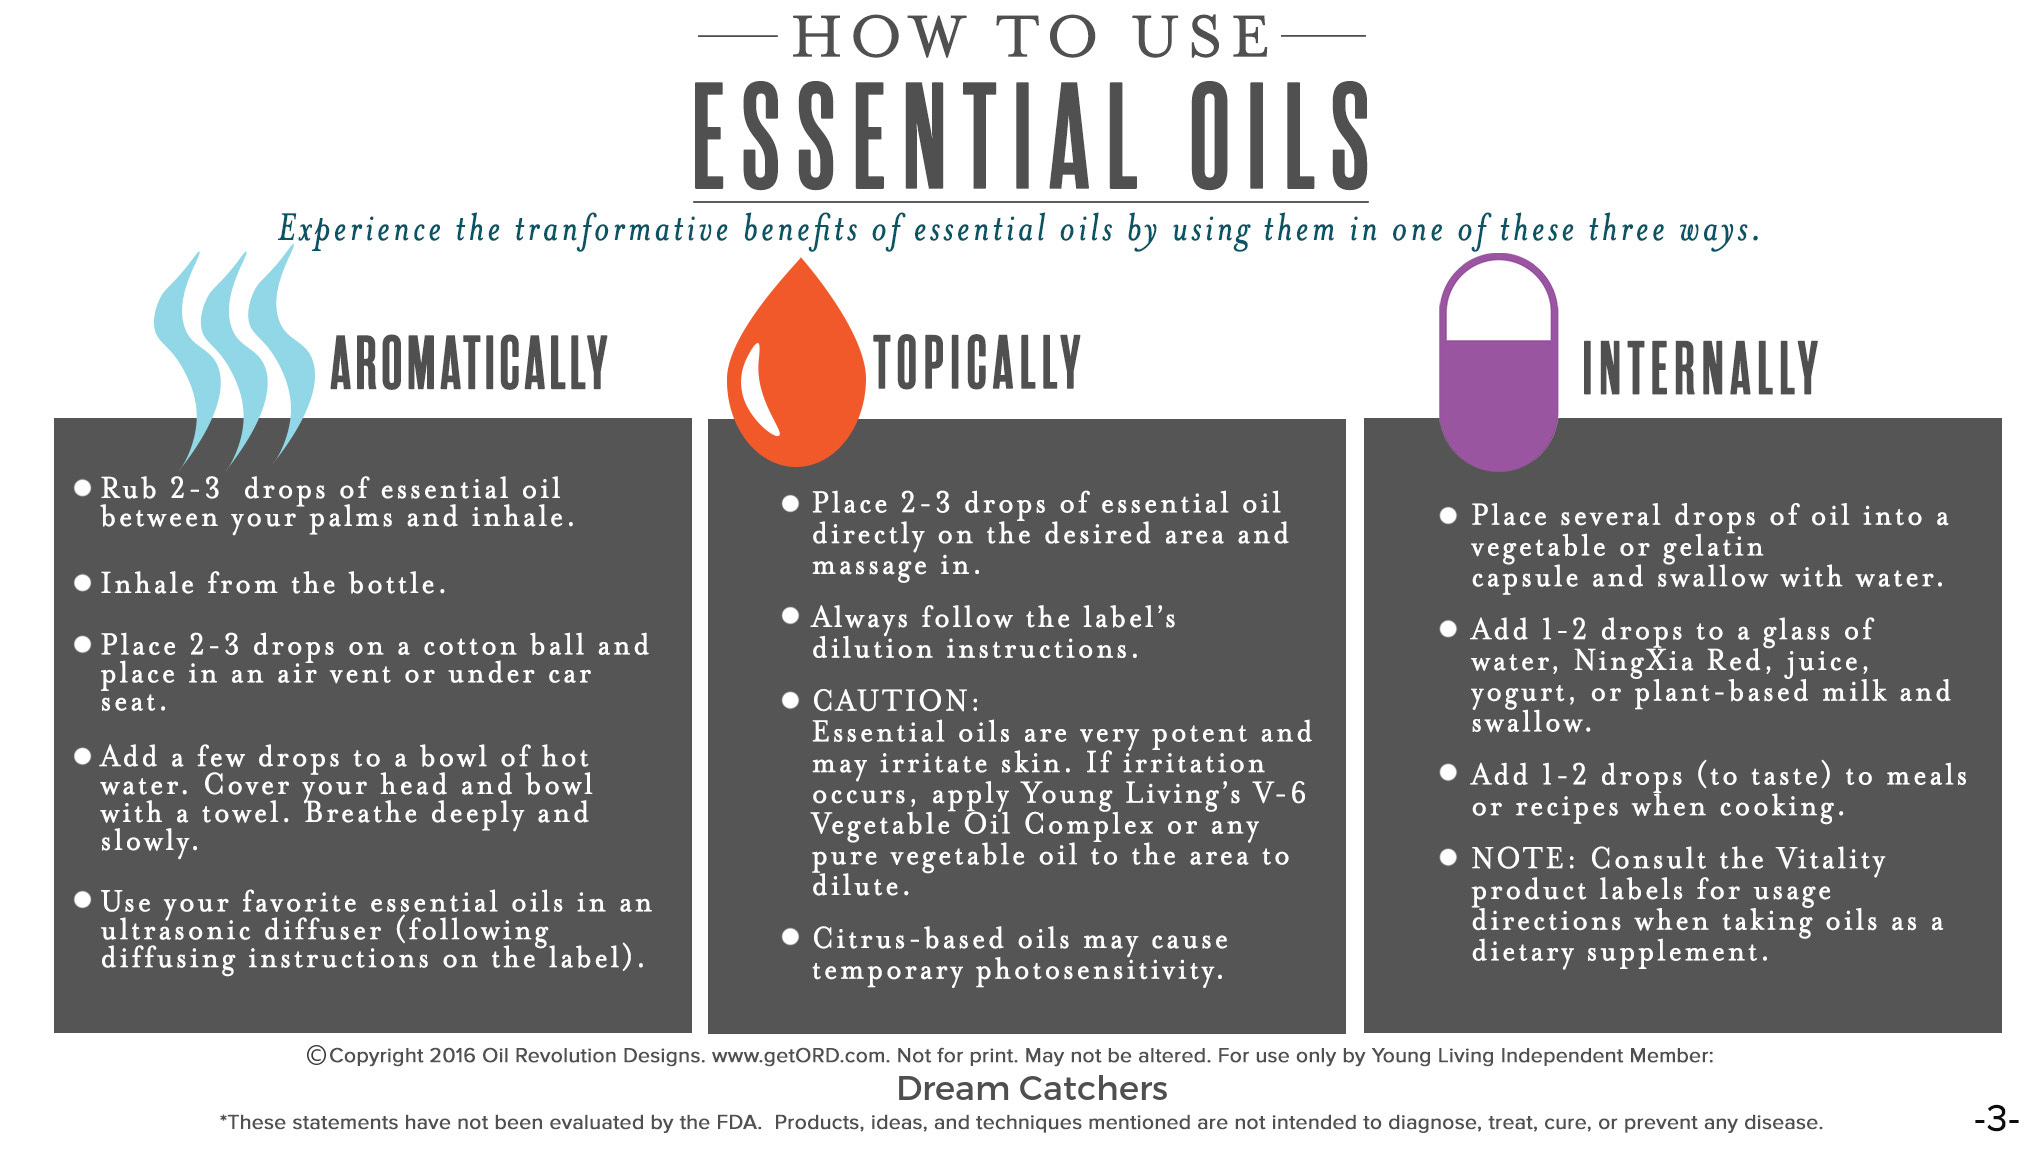 essential oils Beaumont TX, Young Living distributor East Texas, Young Living Lufkin, essential oils Woodville TX, Young Living rep Silsbee,